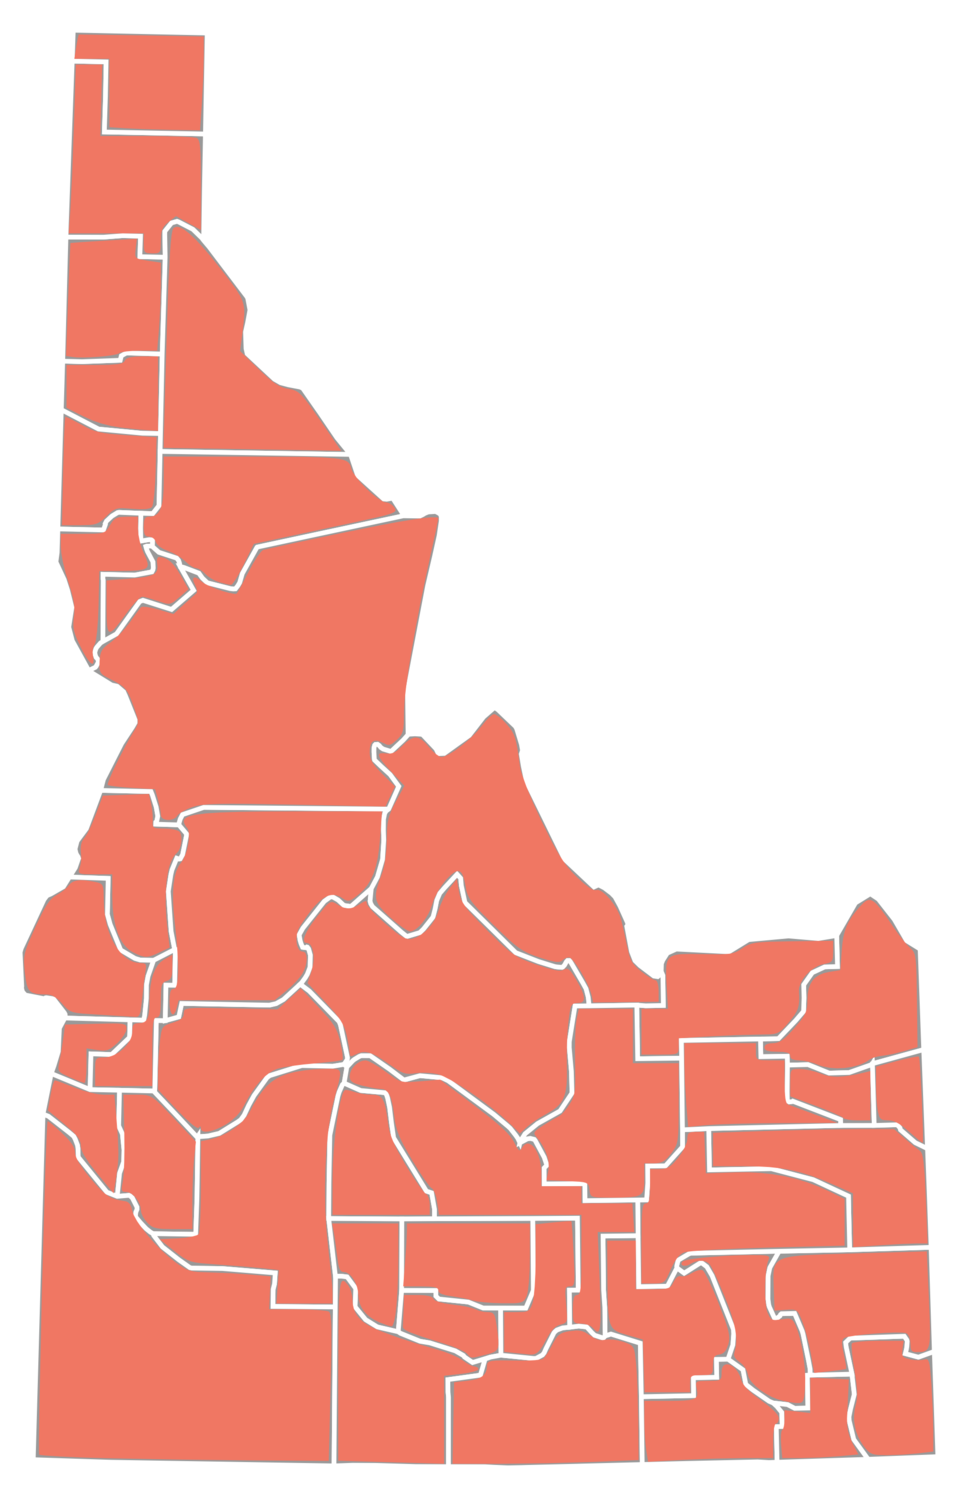 Based on :File:Idaho Senatorial Election Results by County http://www.cbsnews.com/election2010/county.shtml?state=ID&jurisdiction=0&race=S